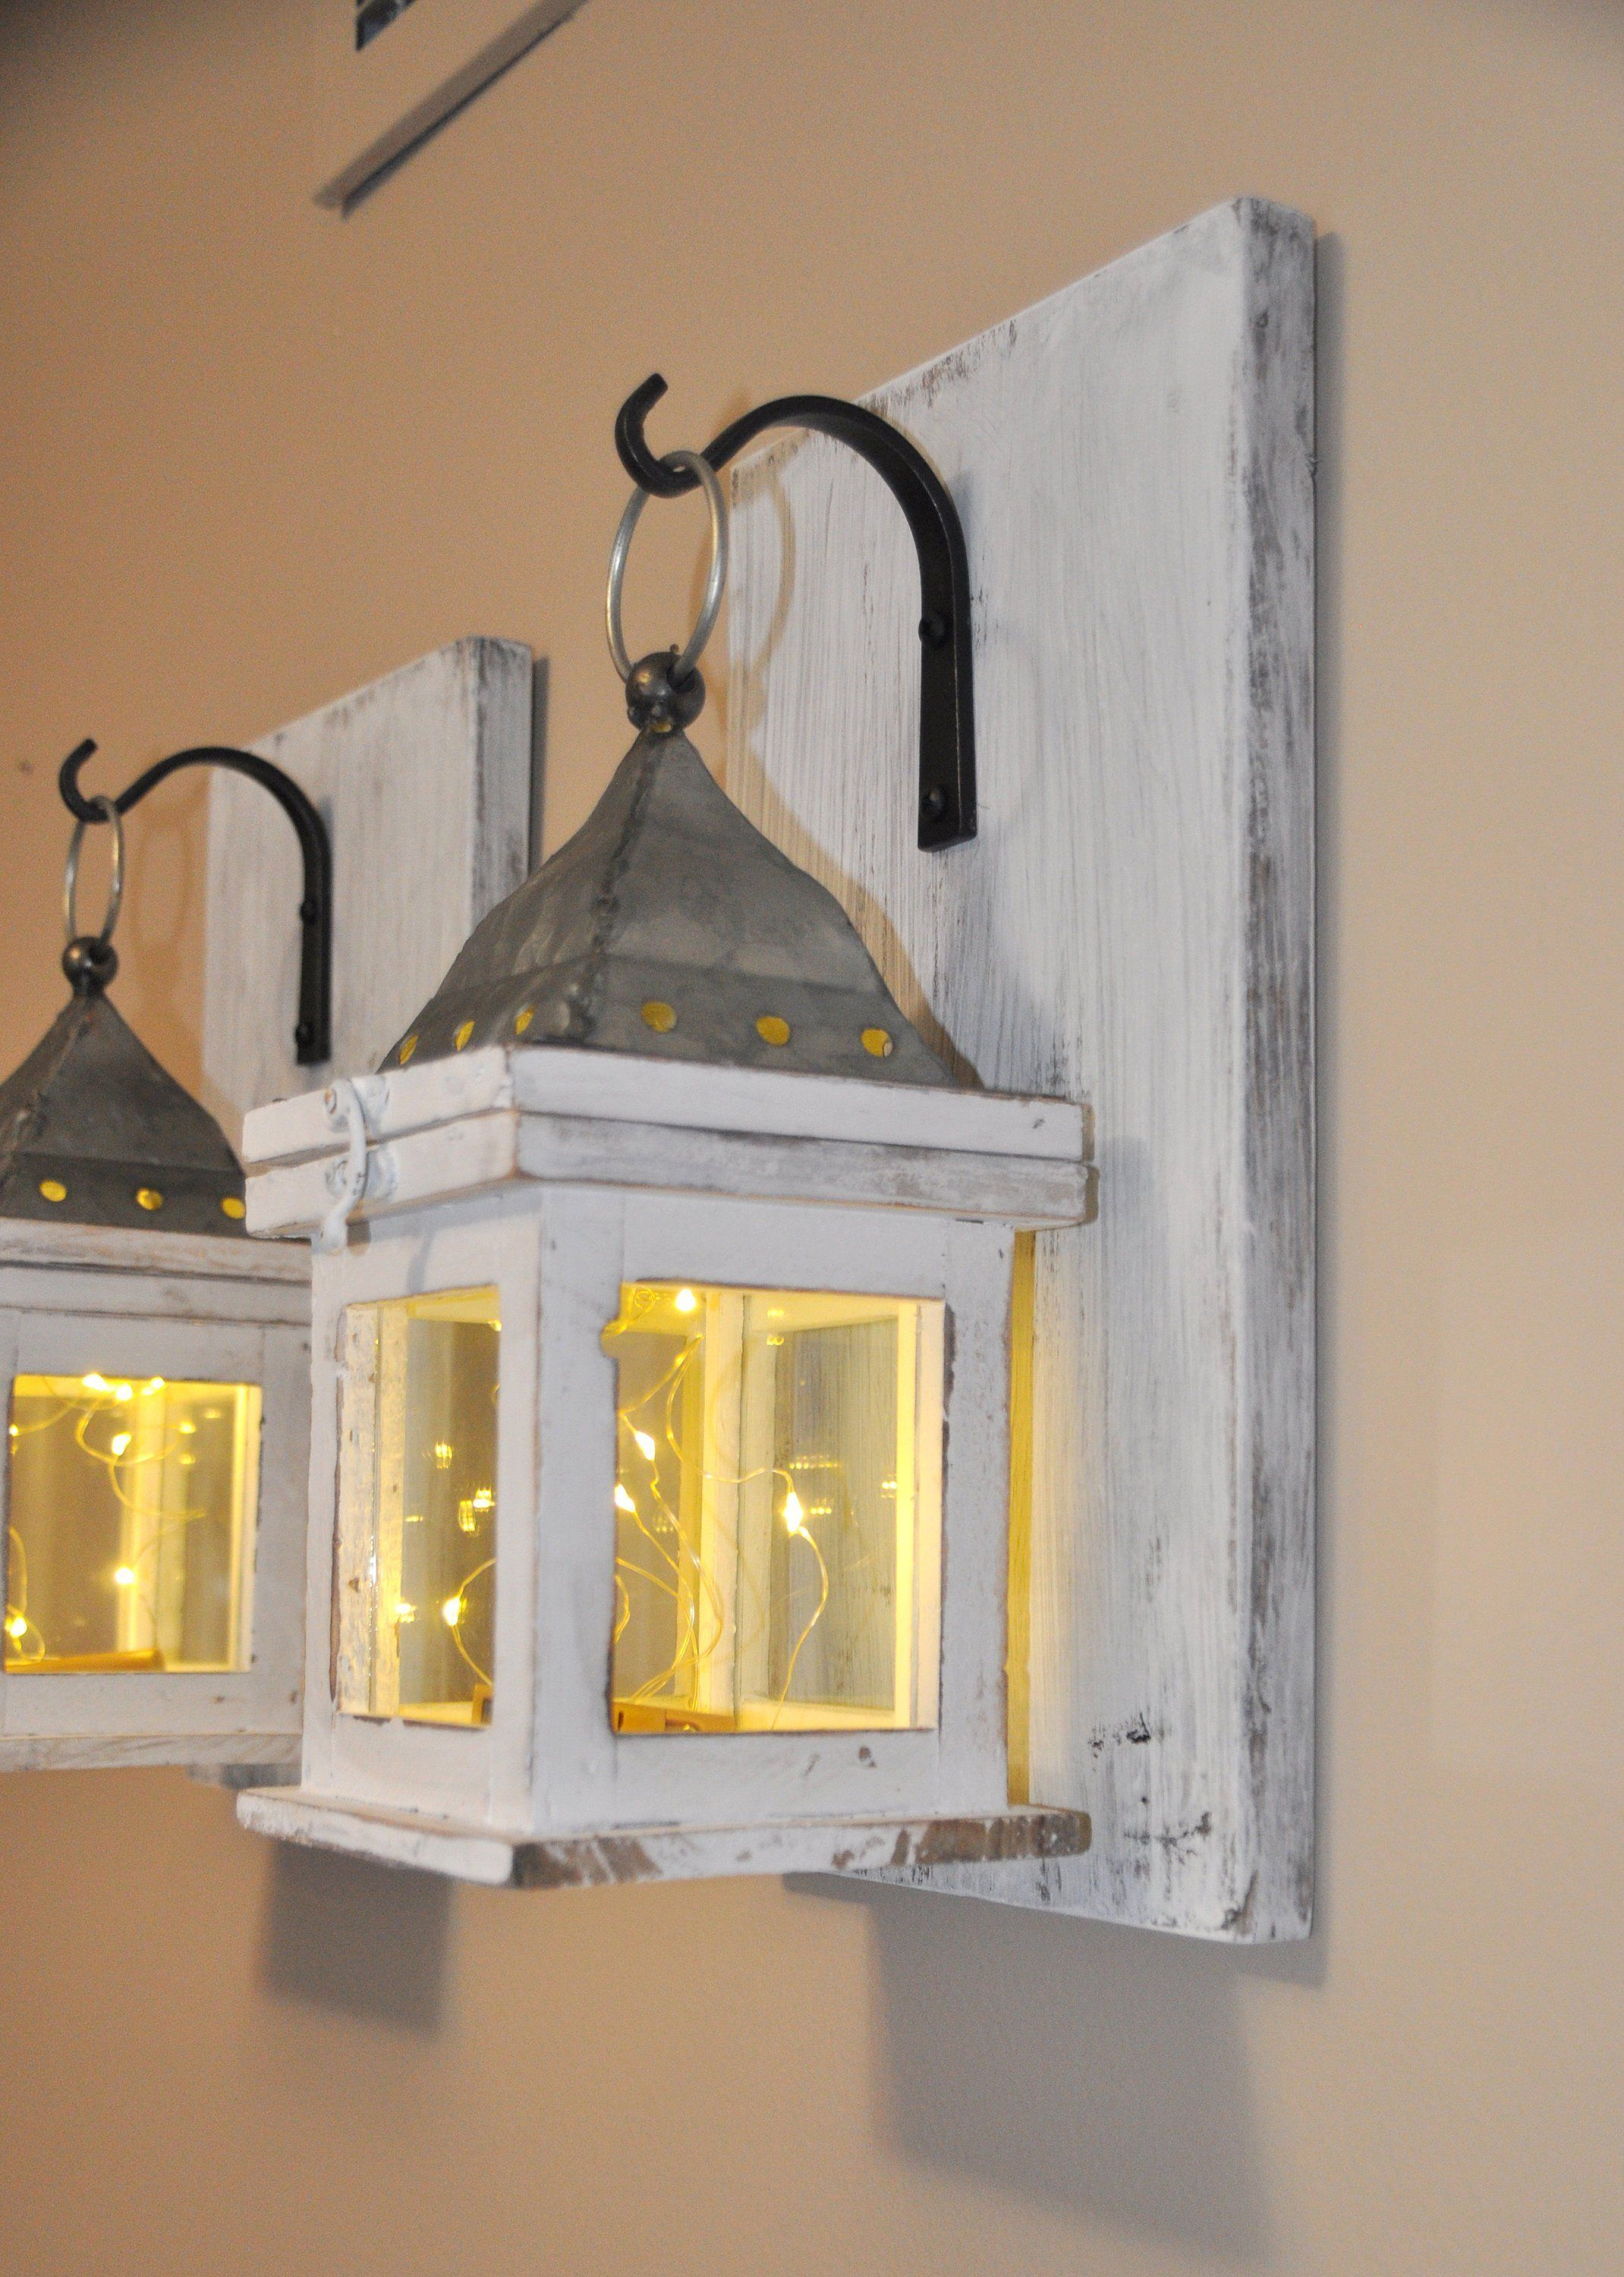 Rustic home decor farmhouse decor hanging lantern sconce white